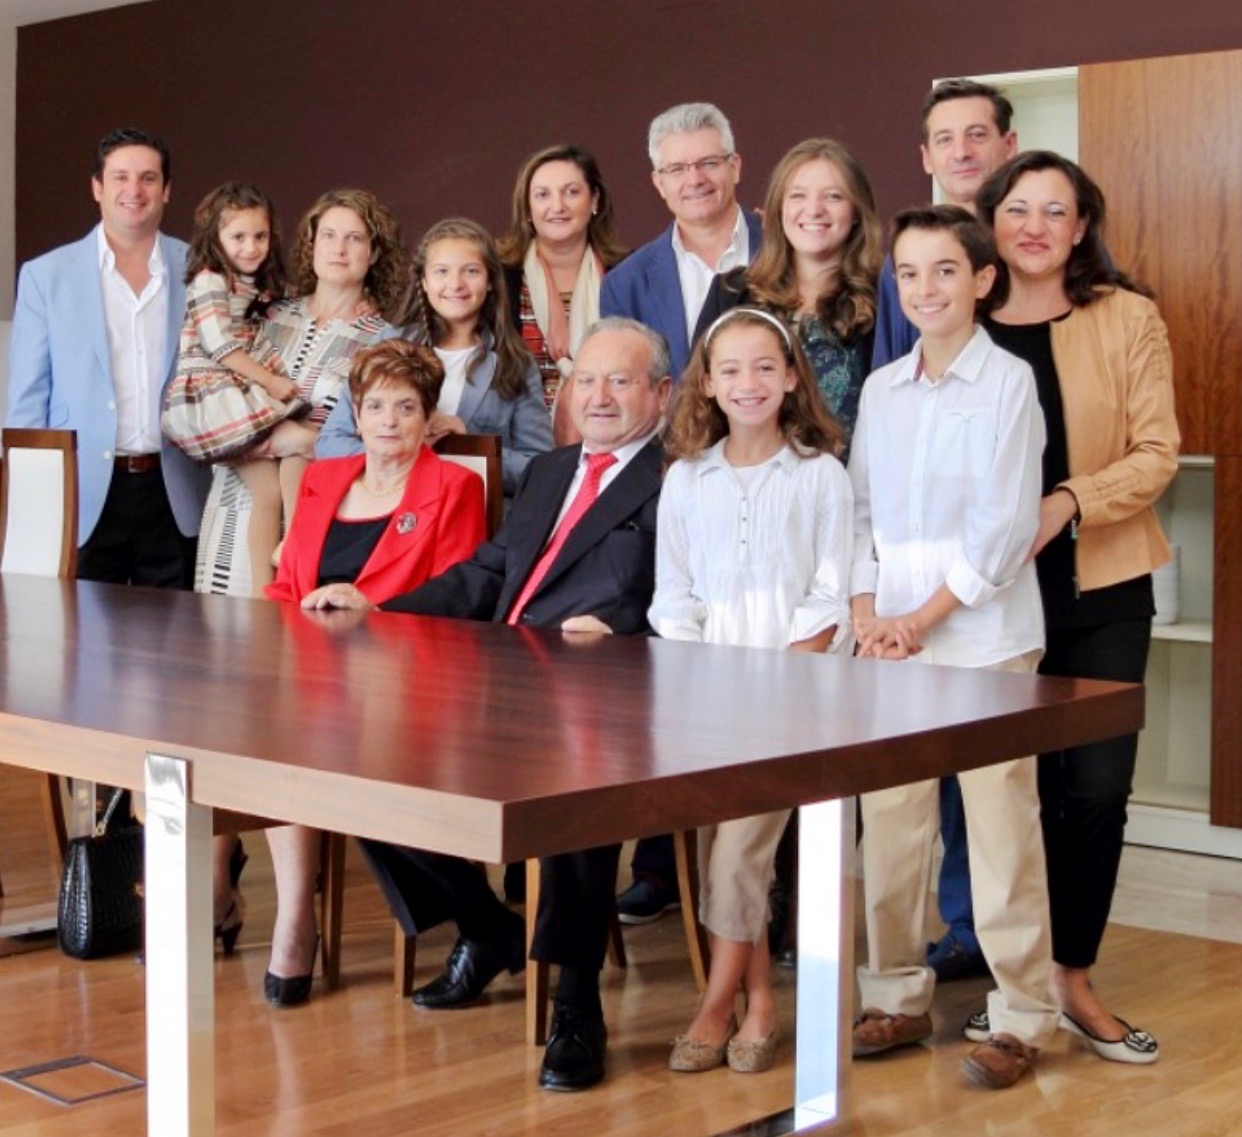 José and Milagros (seated) with their family.